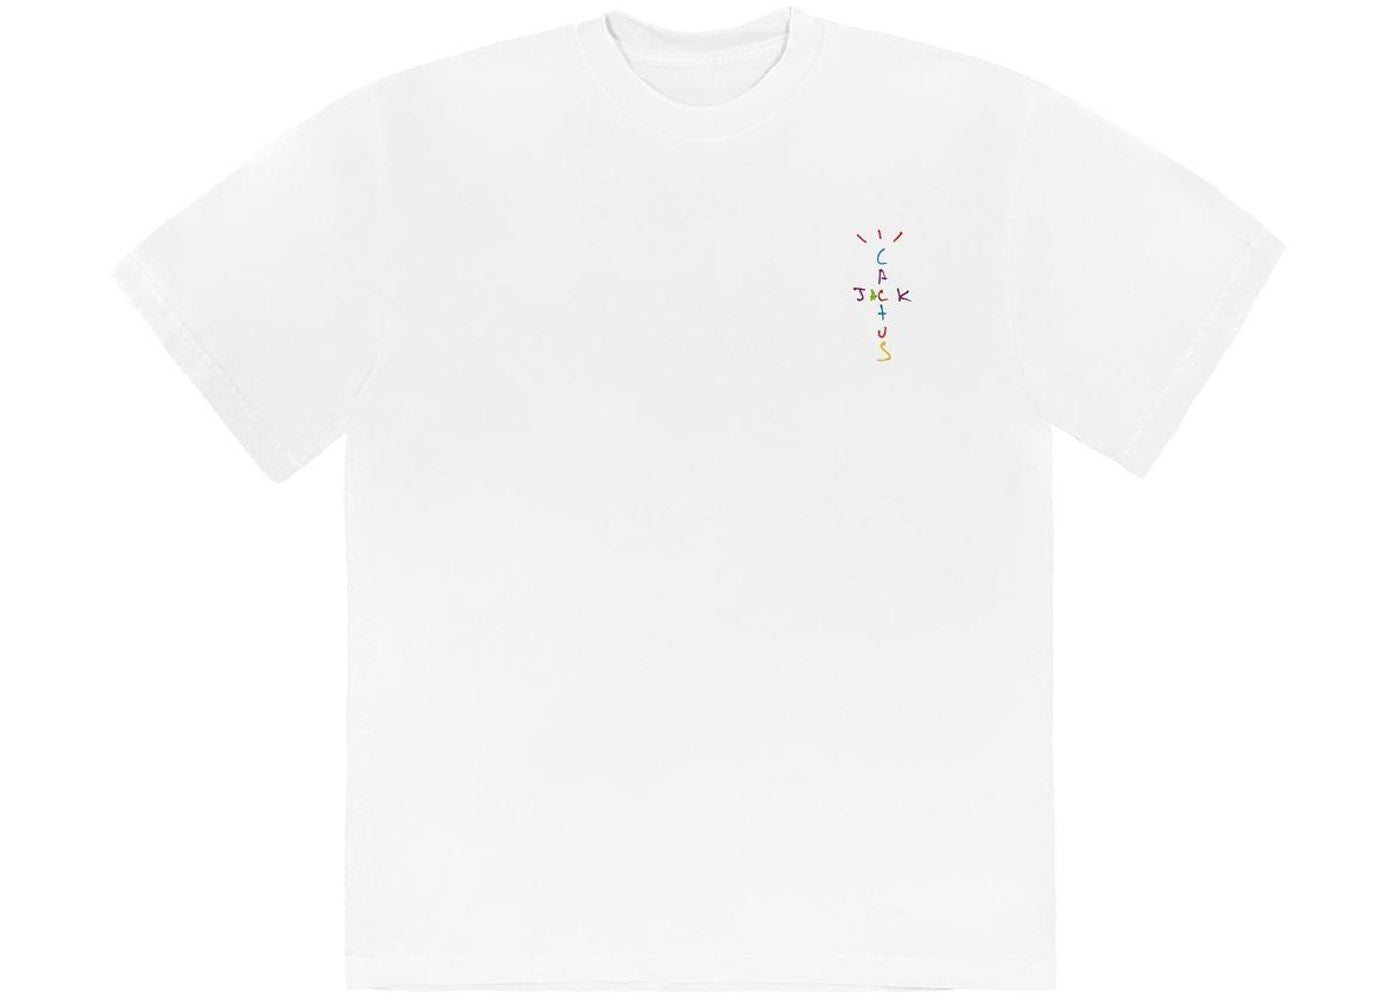 Travis Scott x McDonald's Cj Smile T-Shirt White